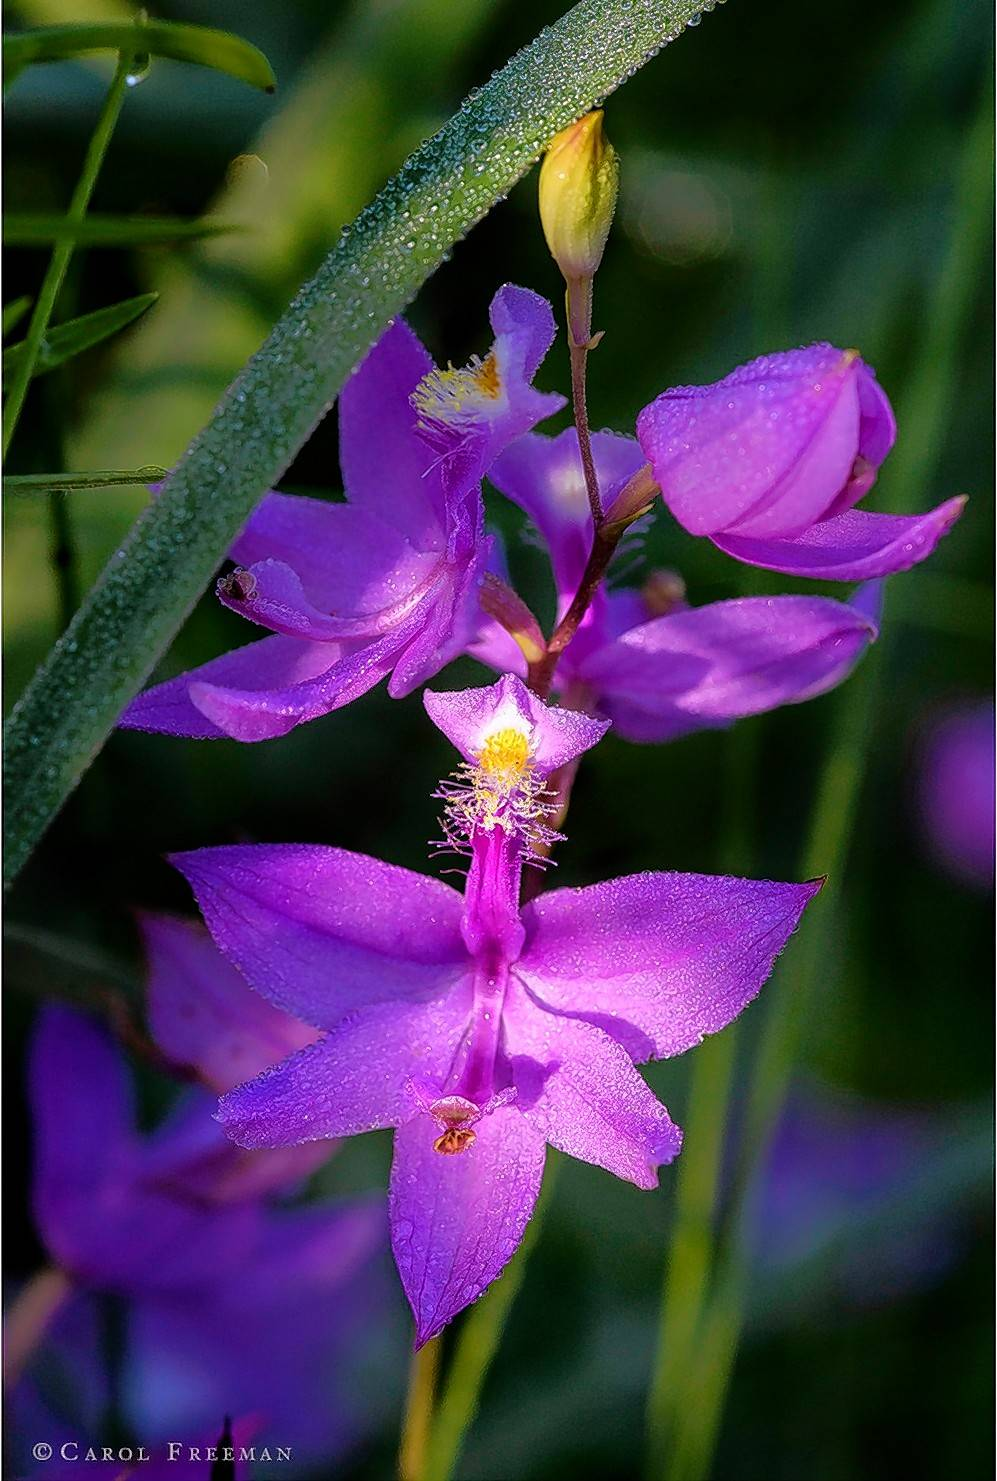 """Grass Pink Orchid"" is one of the works featured in ""Endangered Beauty,"" a nature photography exhibit featuring the work of Carol Freeman. It opens Sunday, Nov. 5."